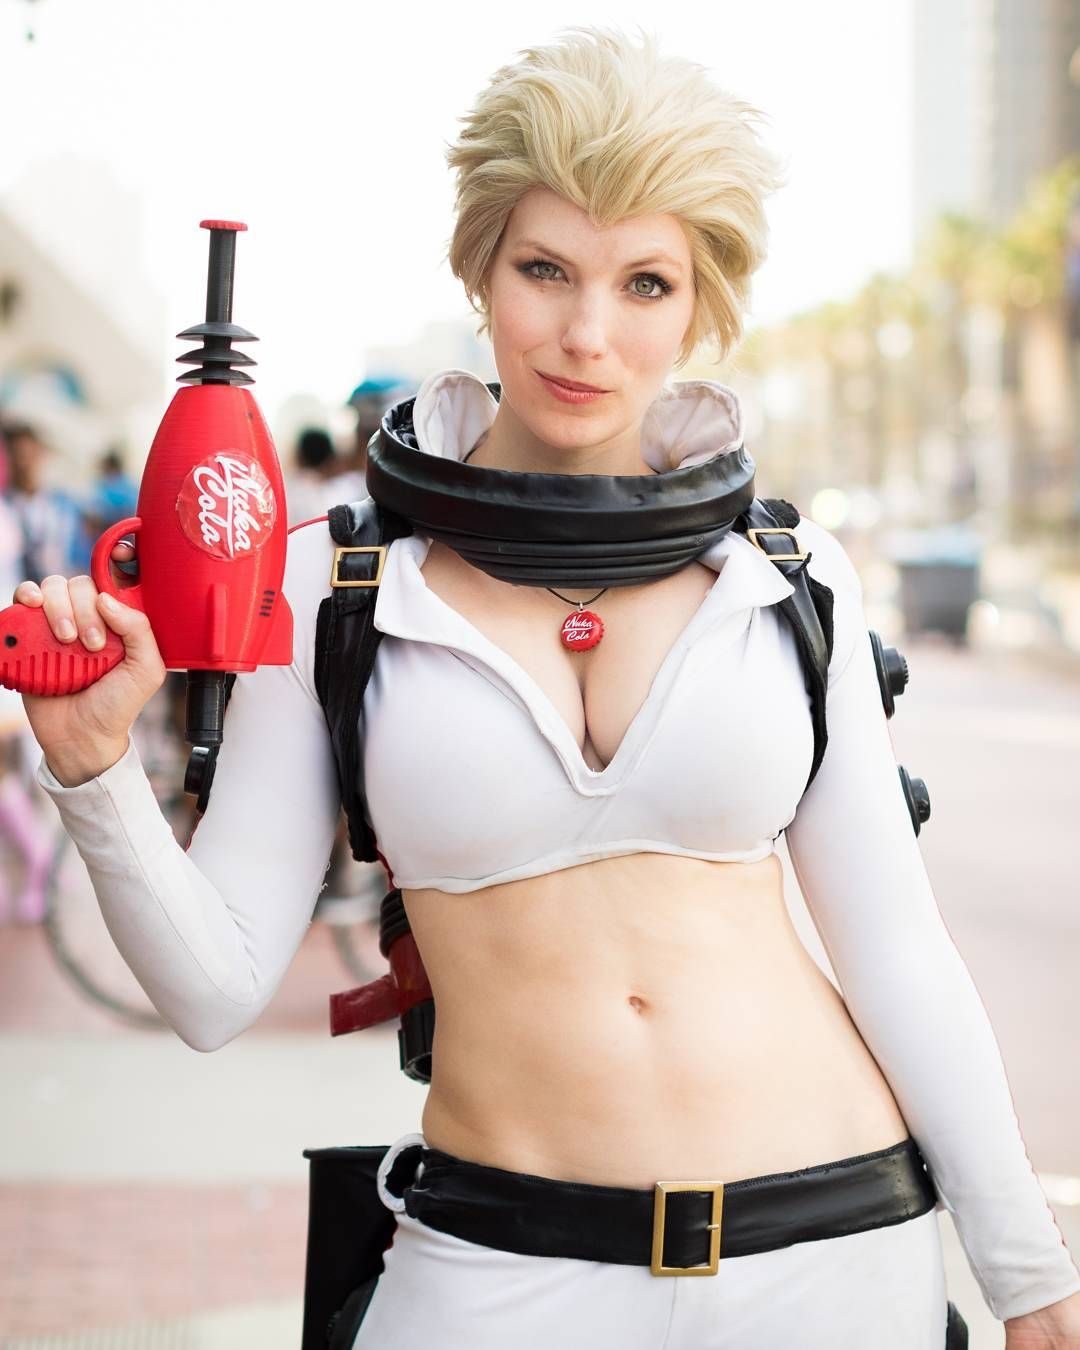 Nuka Girl Cosplay from Fallout 4 | Cosplay | Pinterest | Fallout ...